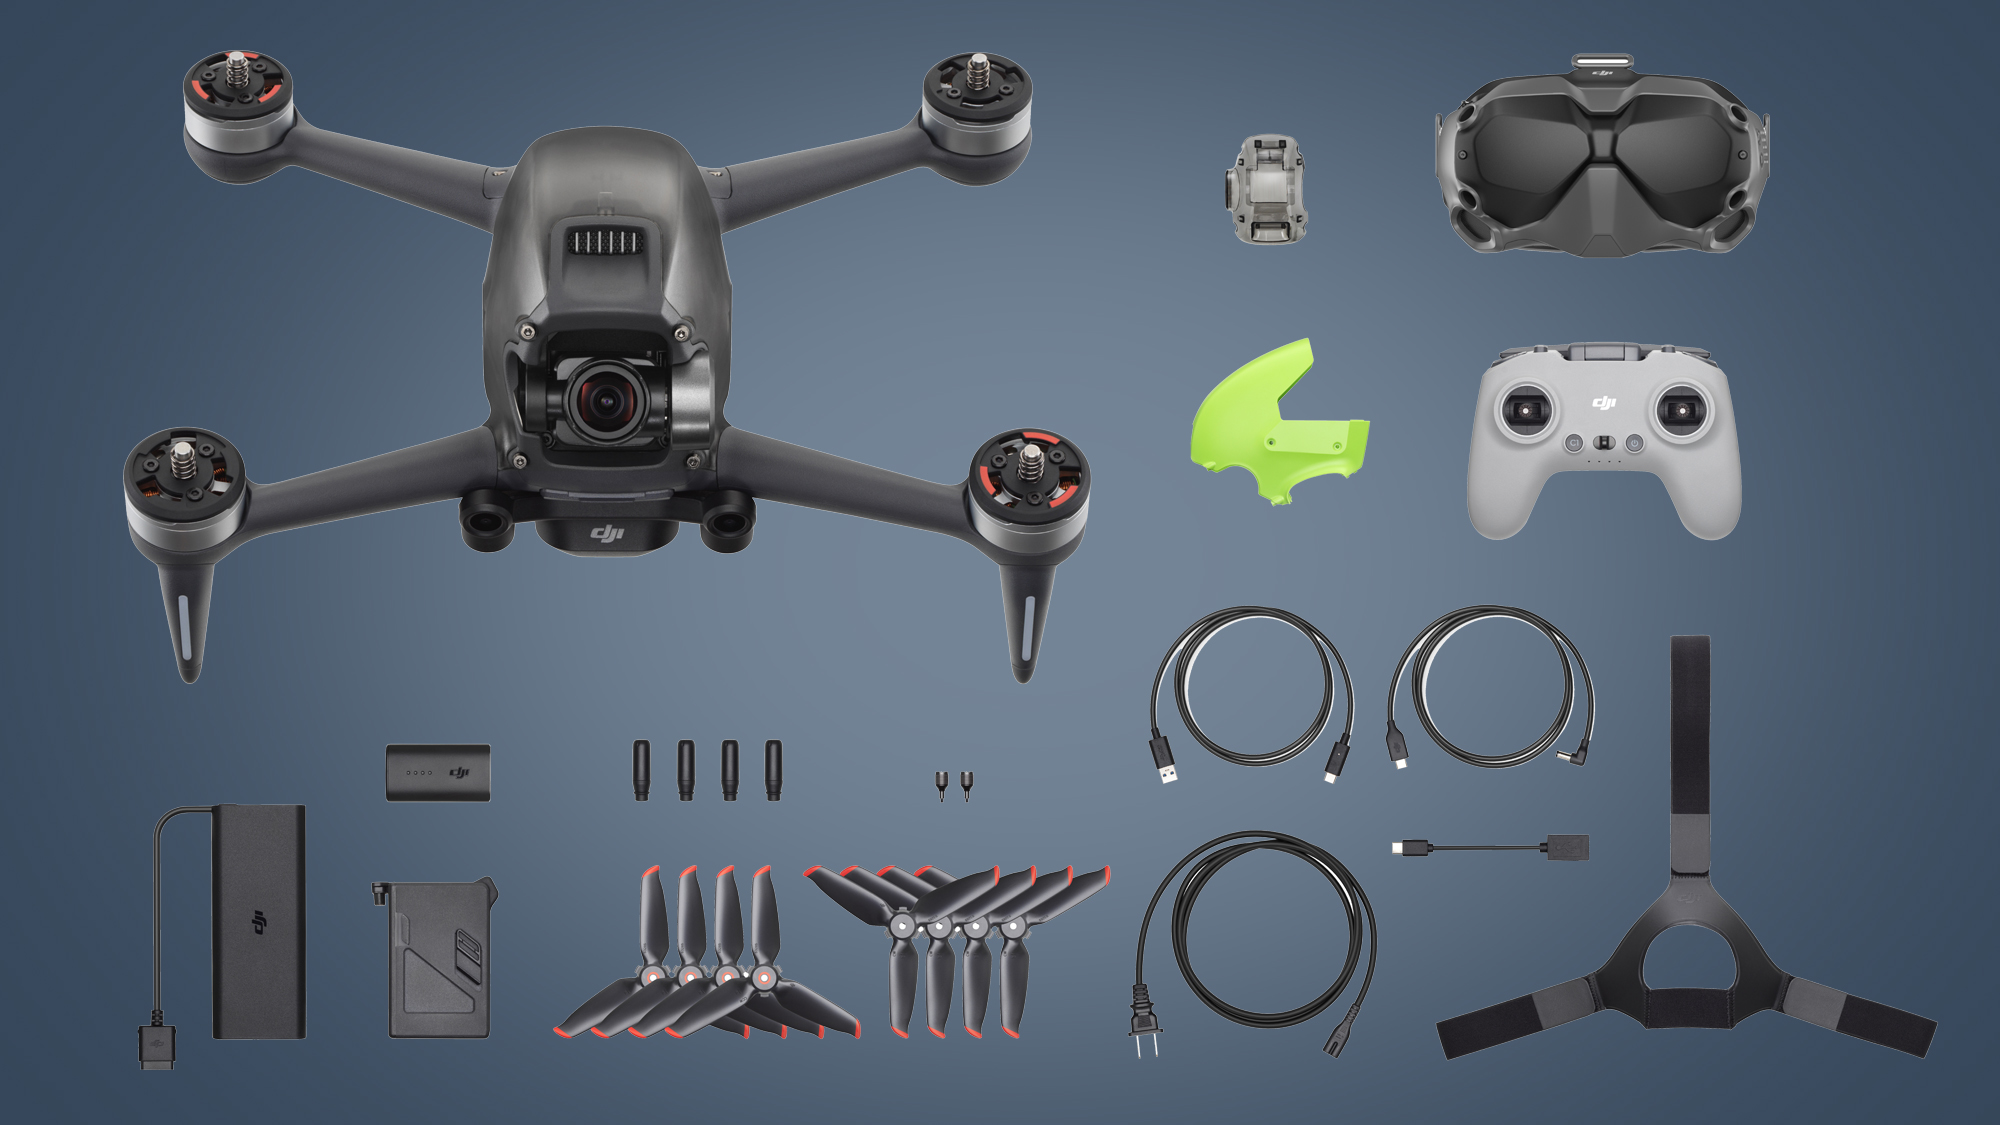 DJI FPV features